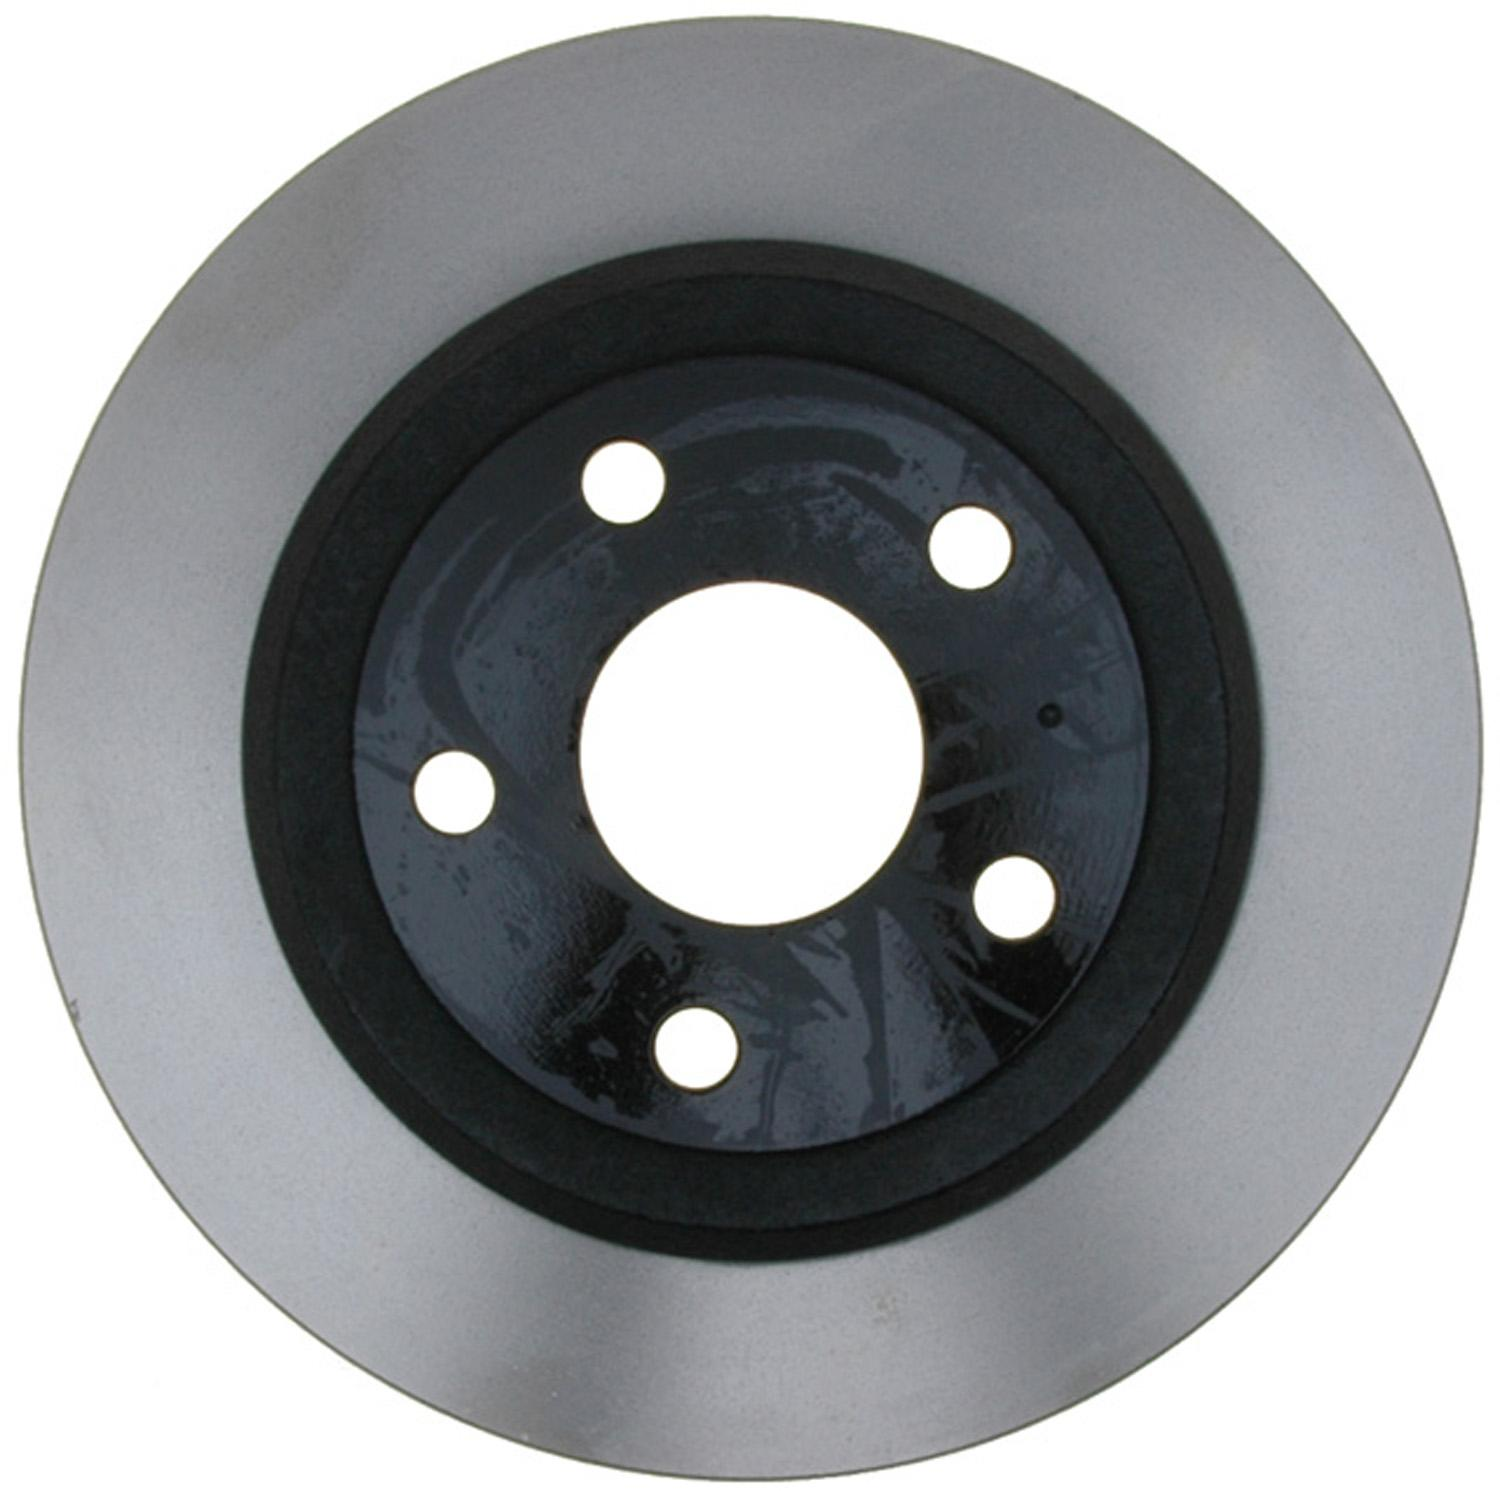 ACDELCO GOLD/PROFESSIONAL BRAKES - Black Hat (Rear) - ADU 18A2792